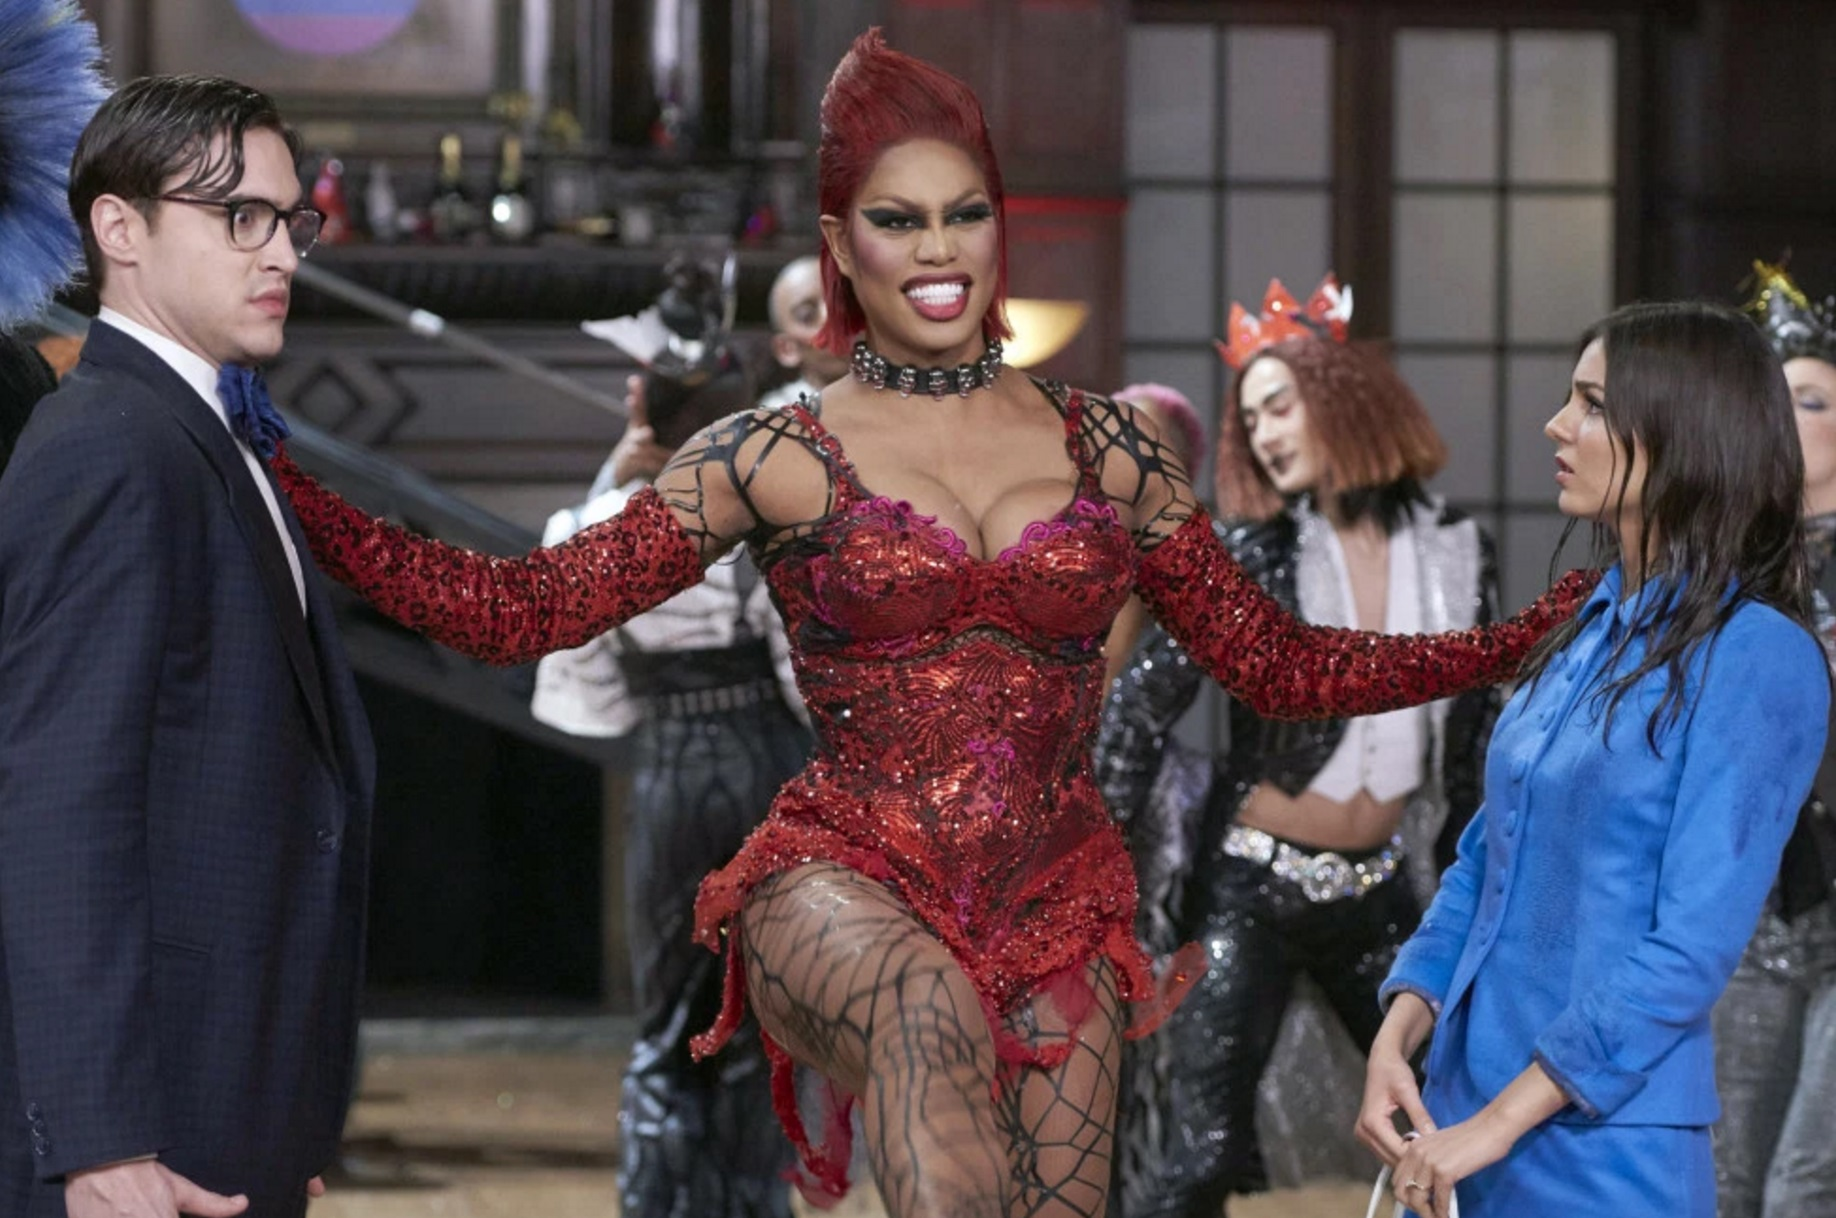 Dr Frank N. Furter (Laverne Cox) greets Brad (Ryan McCartan) and Janet (Victoria Justice) in The Rocky Horror Picture Show Let's Do the Timewarp Again (2016)